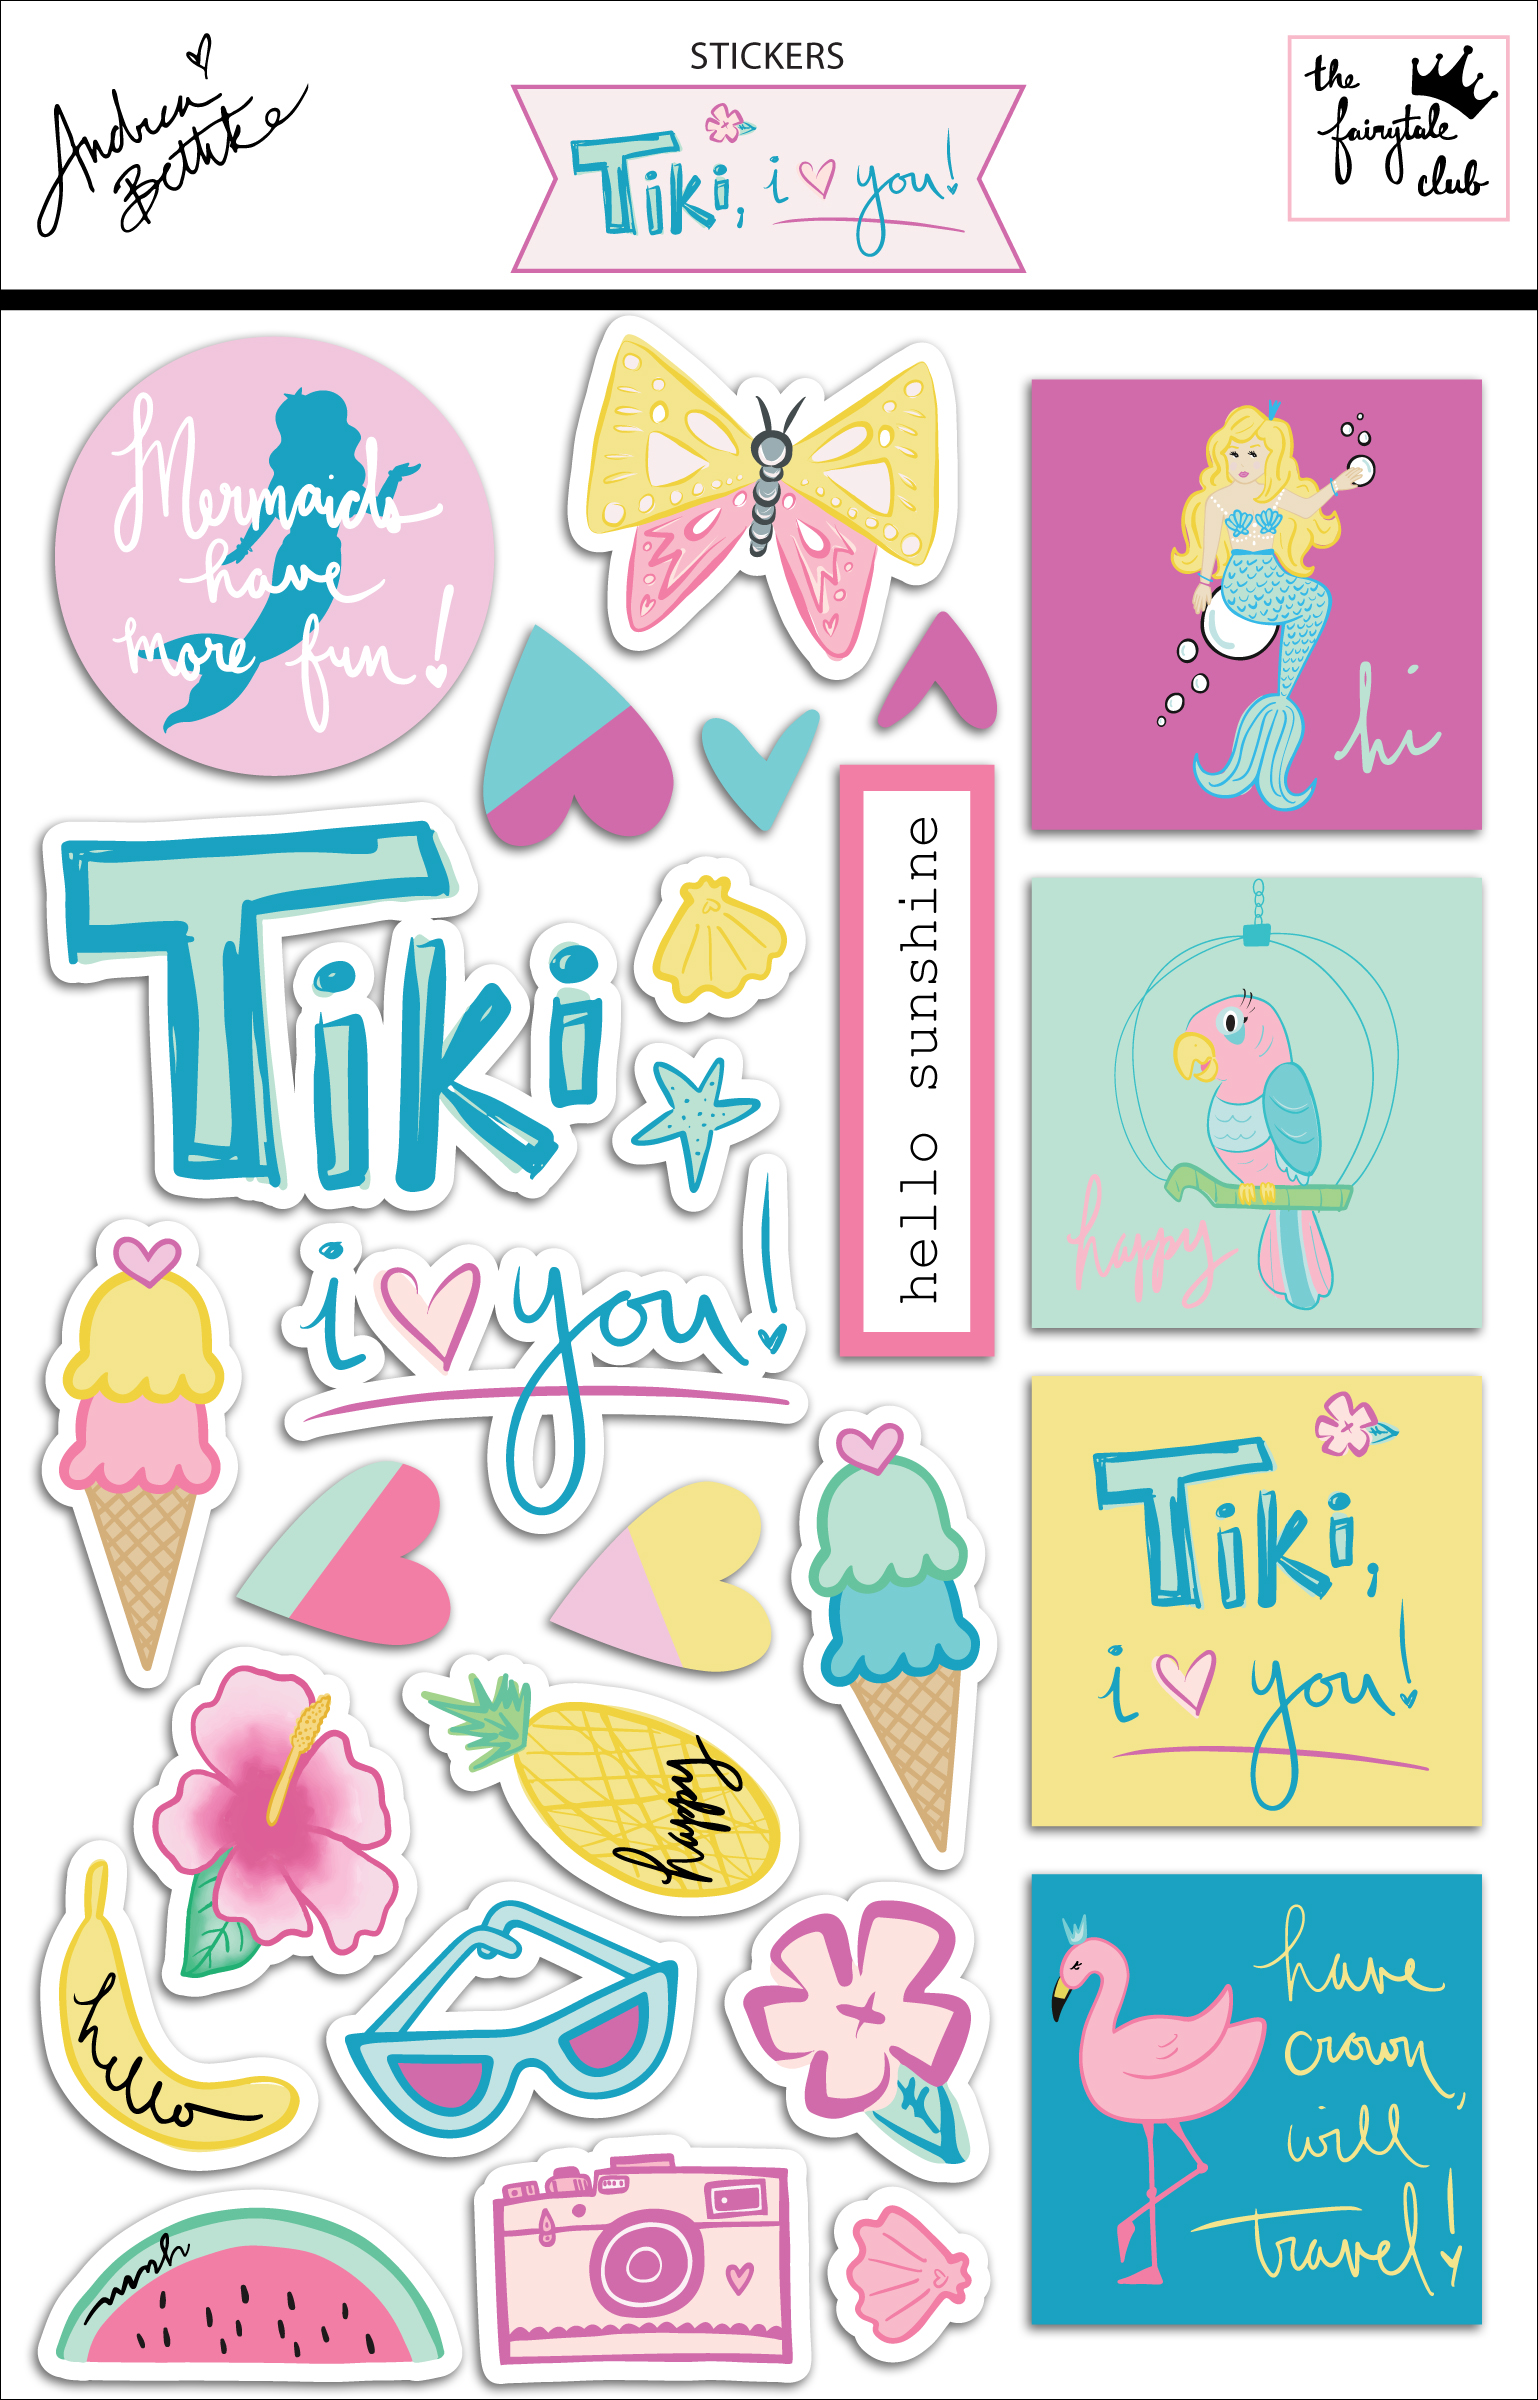 Tiki, I Love You - stickers with packaging.jpg